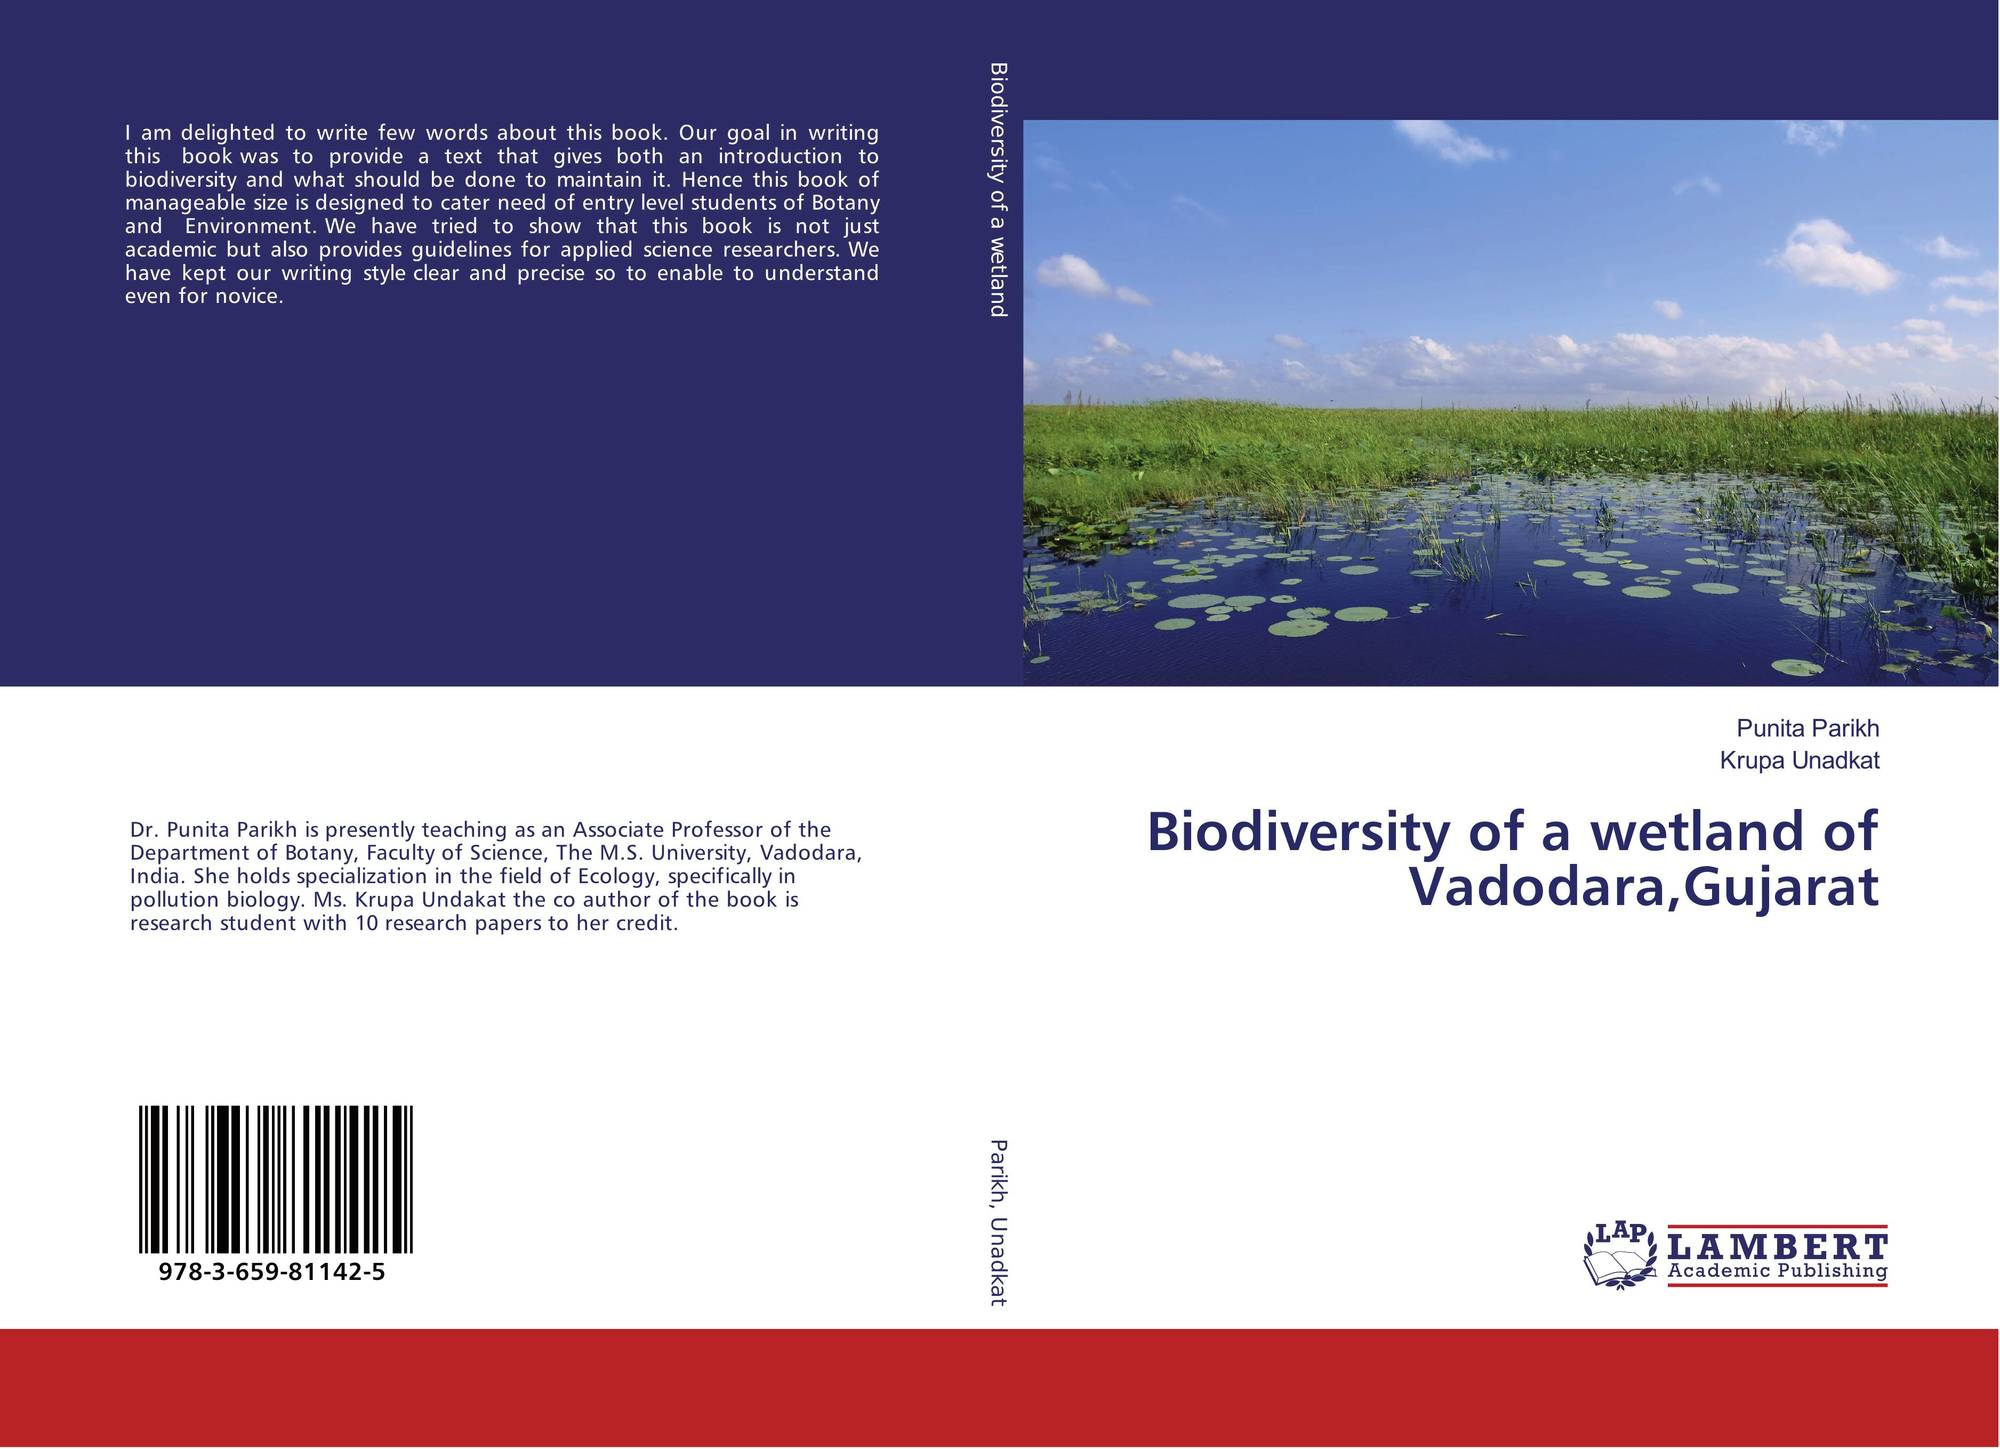 gujarat biodiversity Biodiversity and conservation challenges  impact of algal bloom on mangroves and coral reef ecosystemin marine national park, gulf of kachch, gujarat, india.